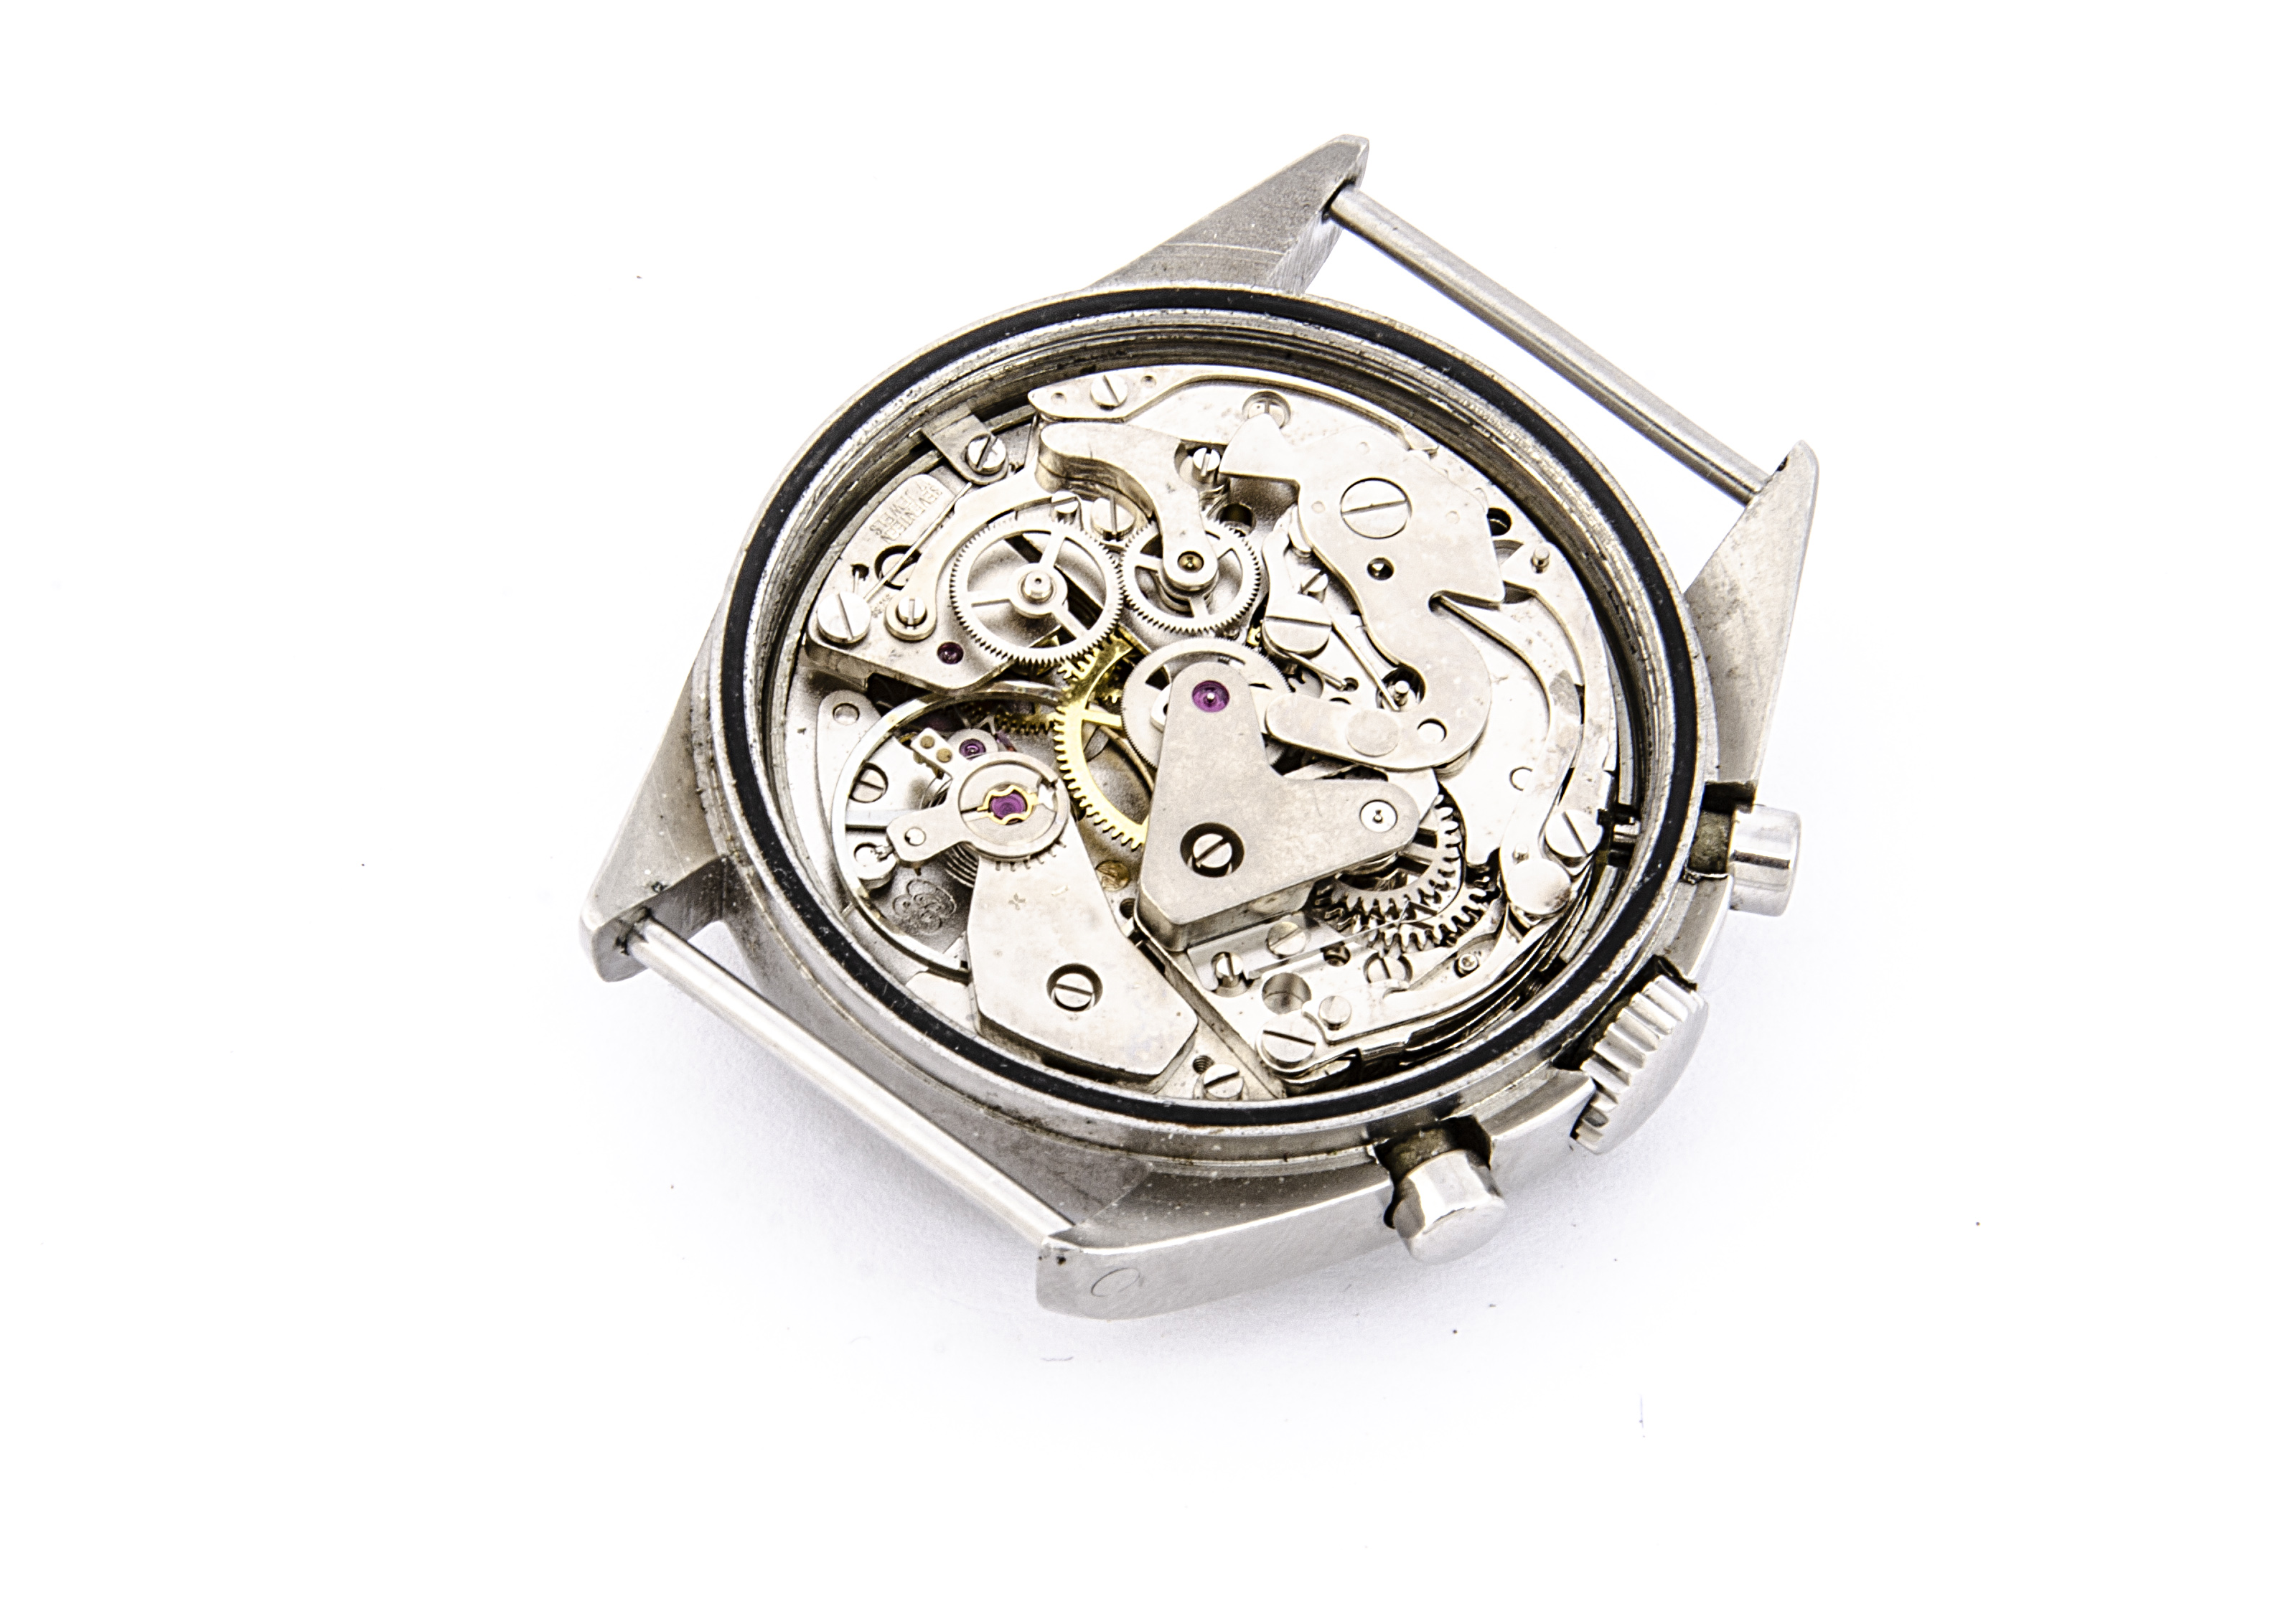 A c1980 Newmark two button chronograph Royal Air Force stainless steel wristwatch, 38mm case, - Image 3 of 4